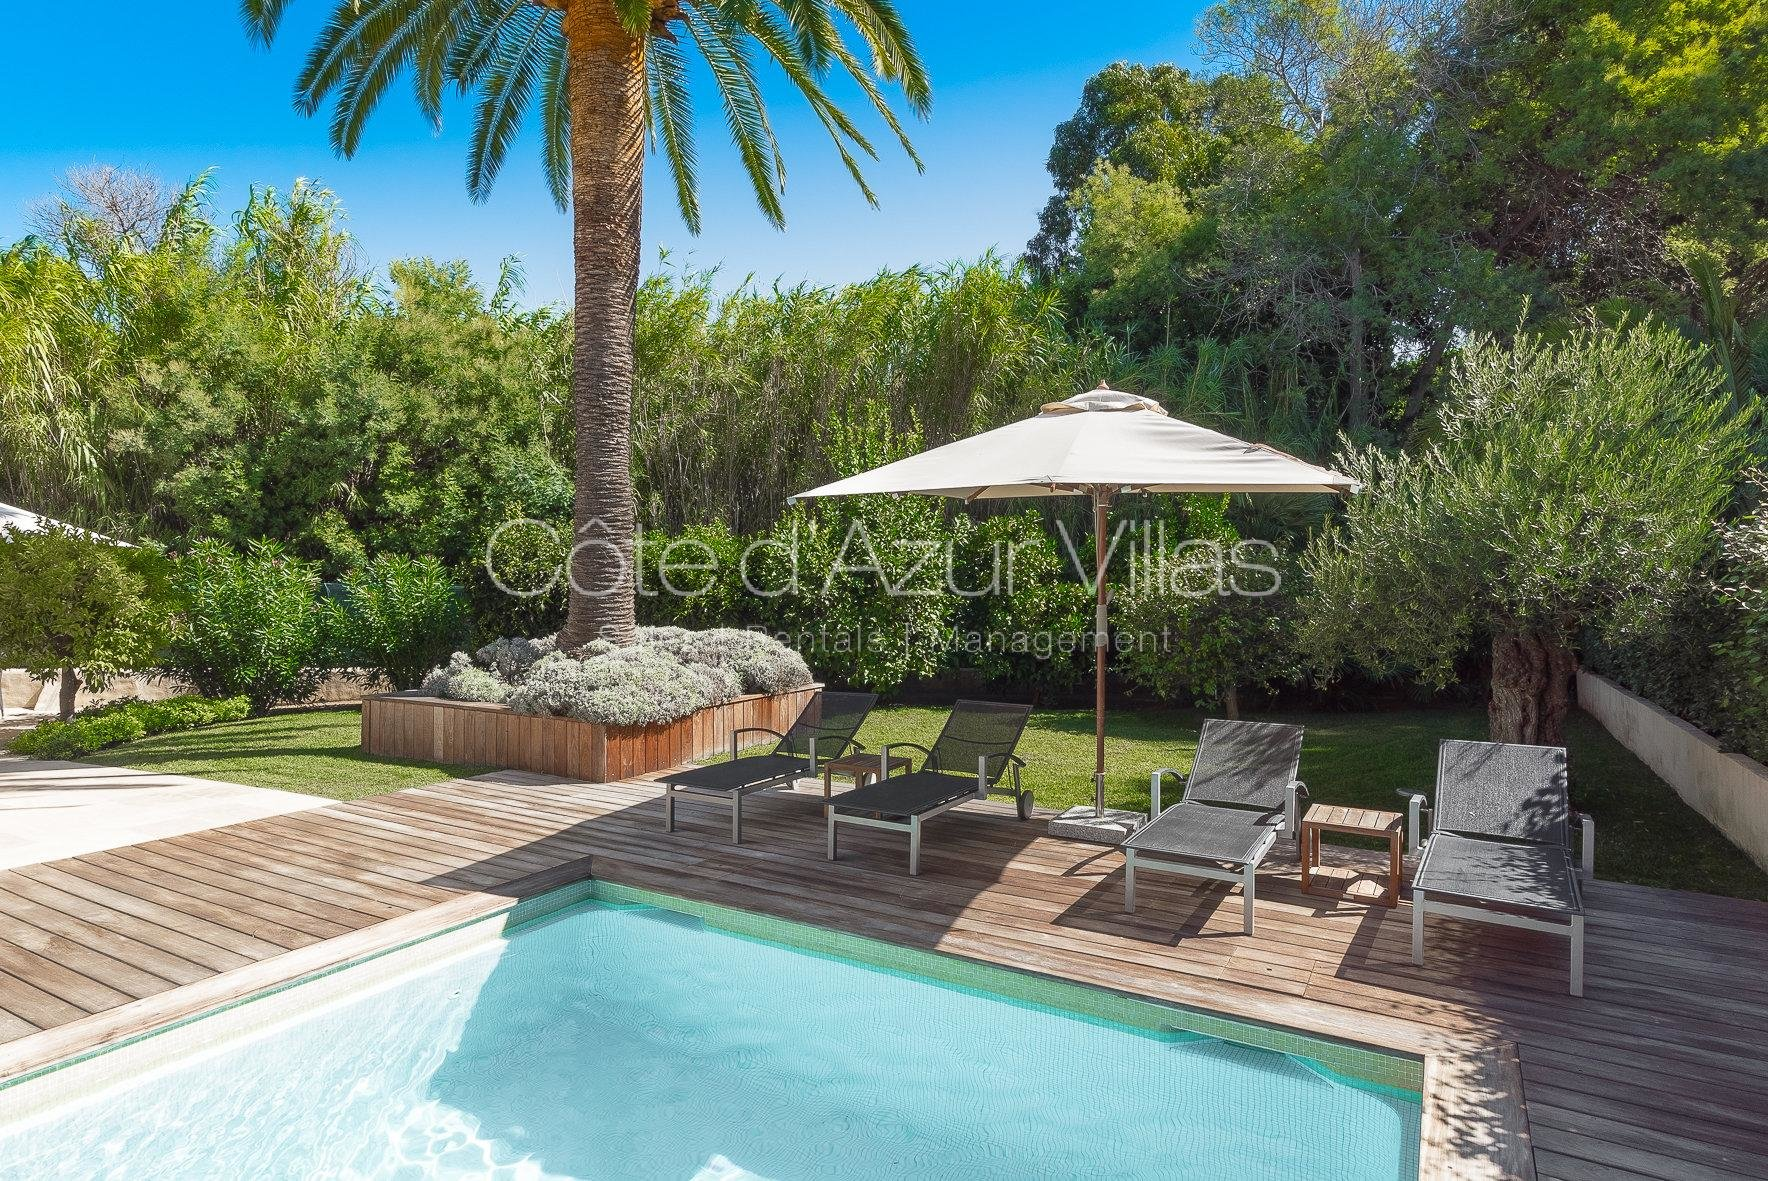 St Tropez - Beautiful Villa a stroll away from the Beach